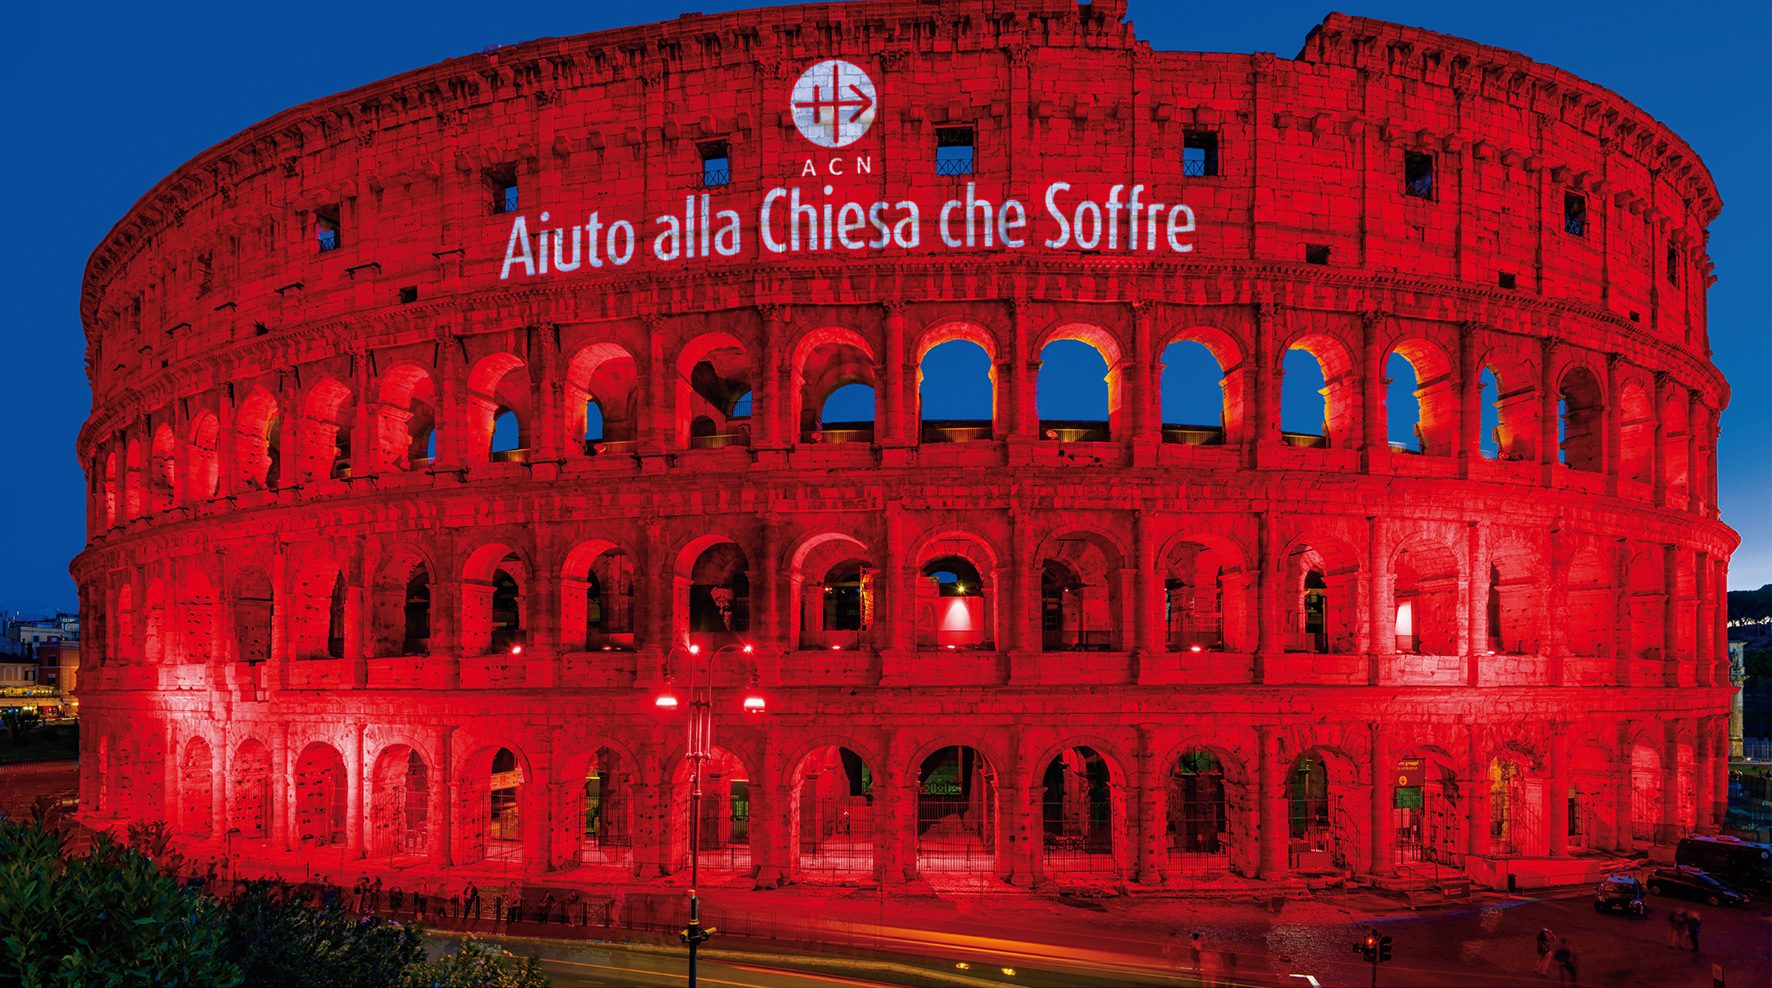 Advertising for the Event - ACN TO ILLUMINATE COLISEUM IN RED – AND CHURCHES IN ALEPPO AND MOSUL AT THE SAME TIME on 24 February 2018 at around 6 p.m.